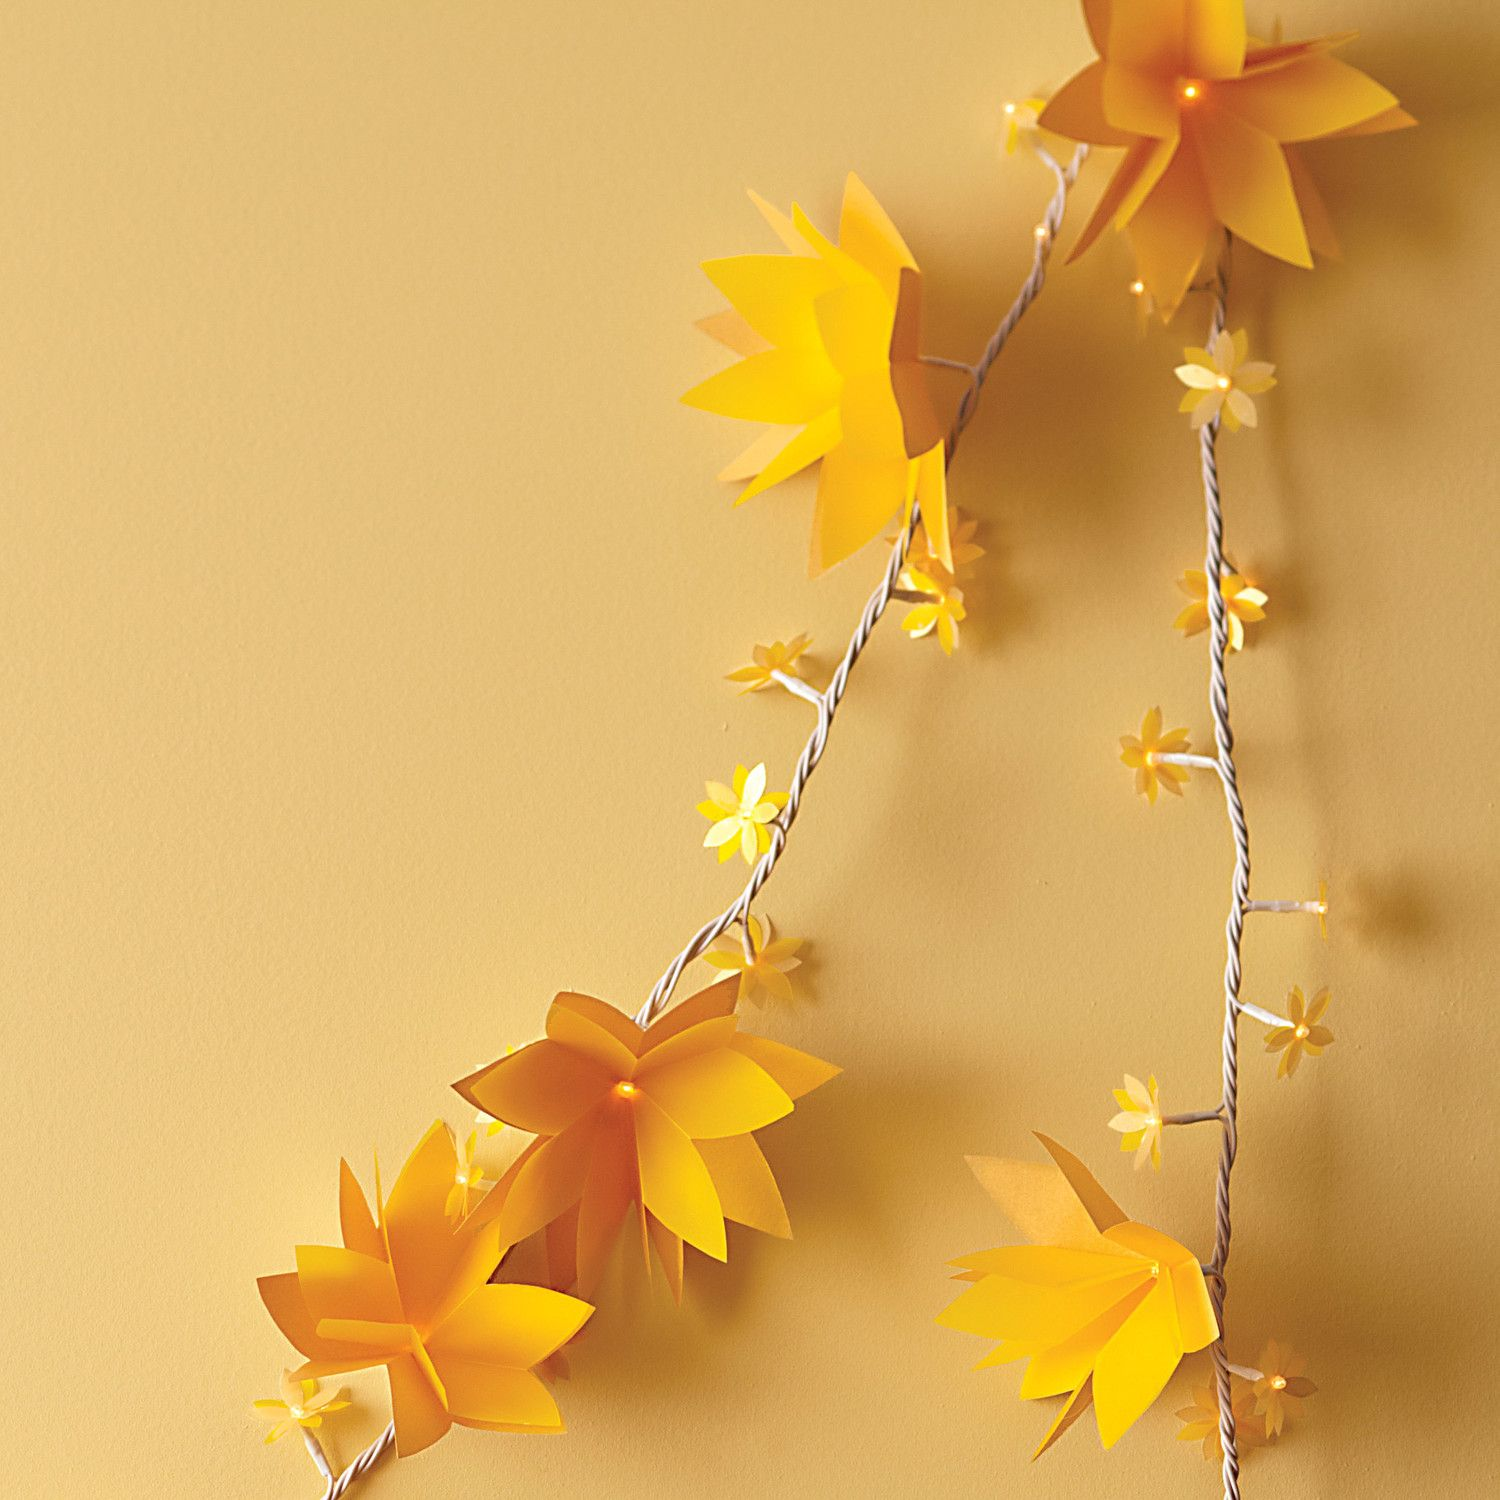 Light up paper flower garland how to vellum paper flower lights dress up a serving table or add some sparkle to a photo booth with these easy to make paper flower lights to add drama use a bright bold shade of vellum mightylinksfo